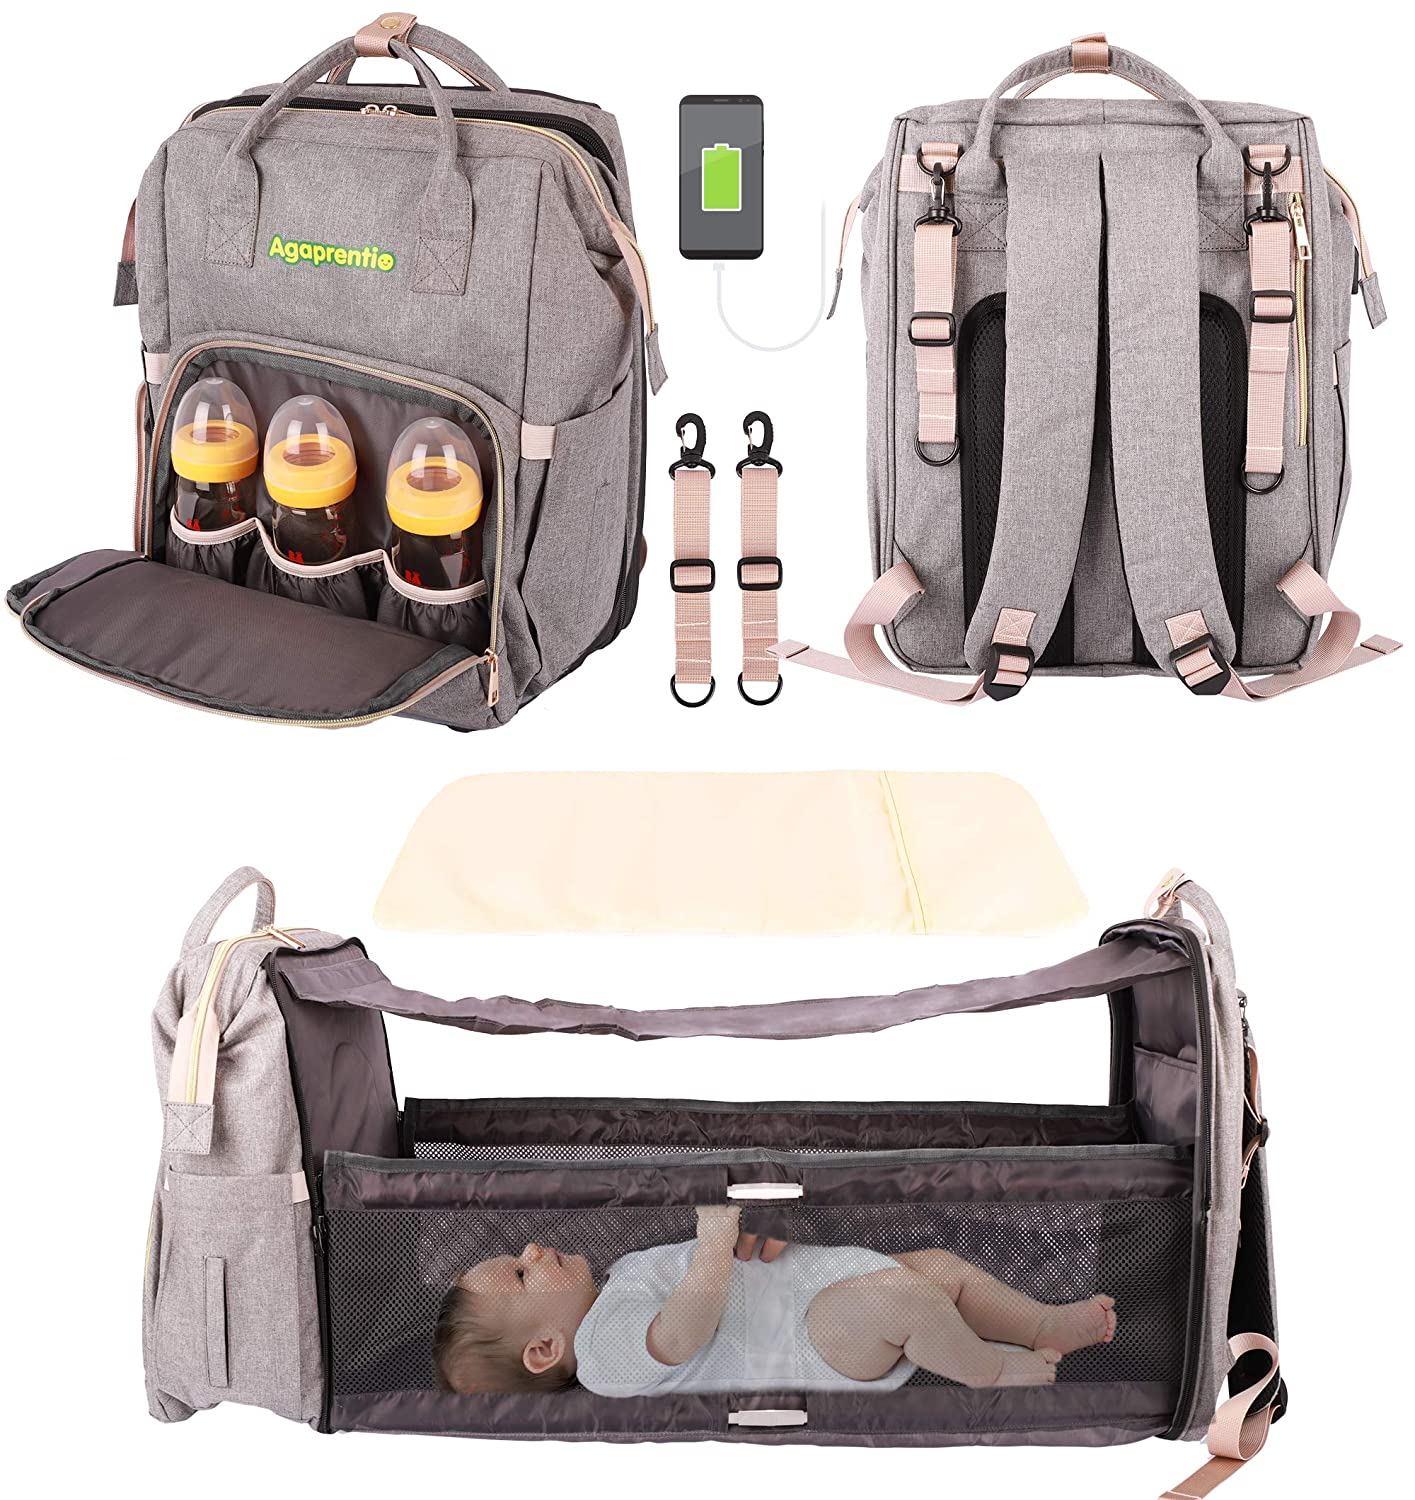 Diaper Bag with Changing Station Bassinet 3 in 1 Backpack Bags Foldable Bed Crib and 13 Functional Pockets, Built-in USB Charging Port and Stroller Straps (Grey)